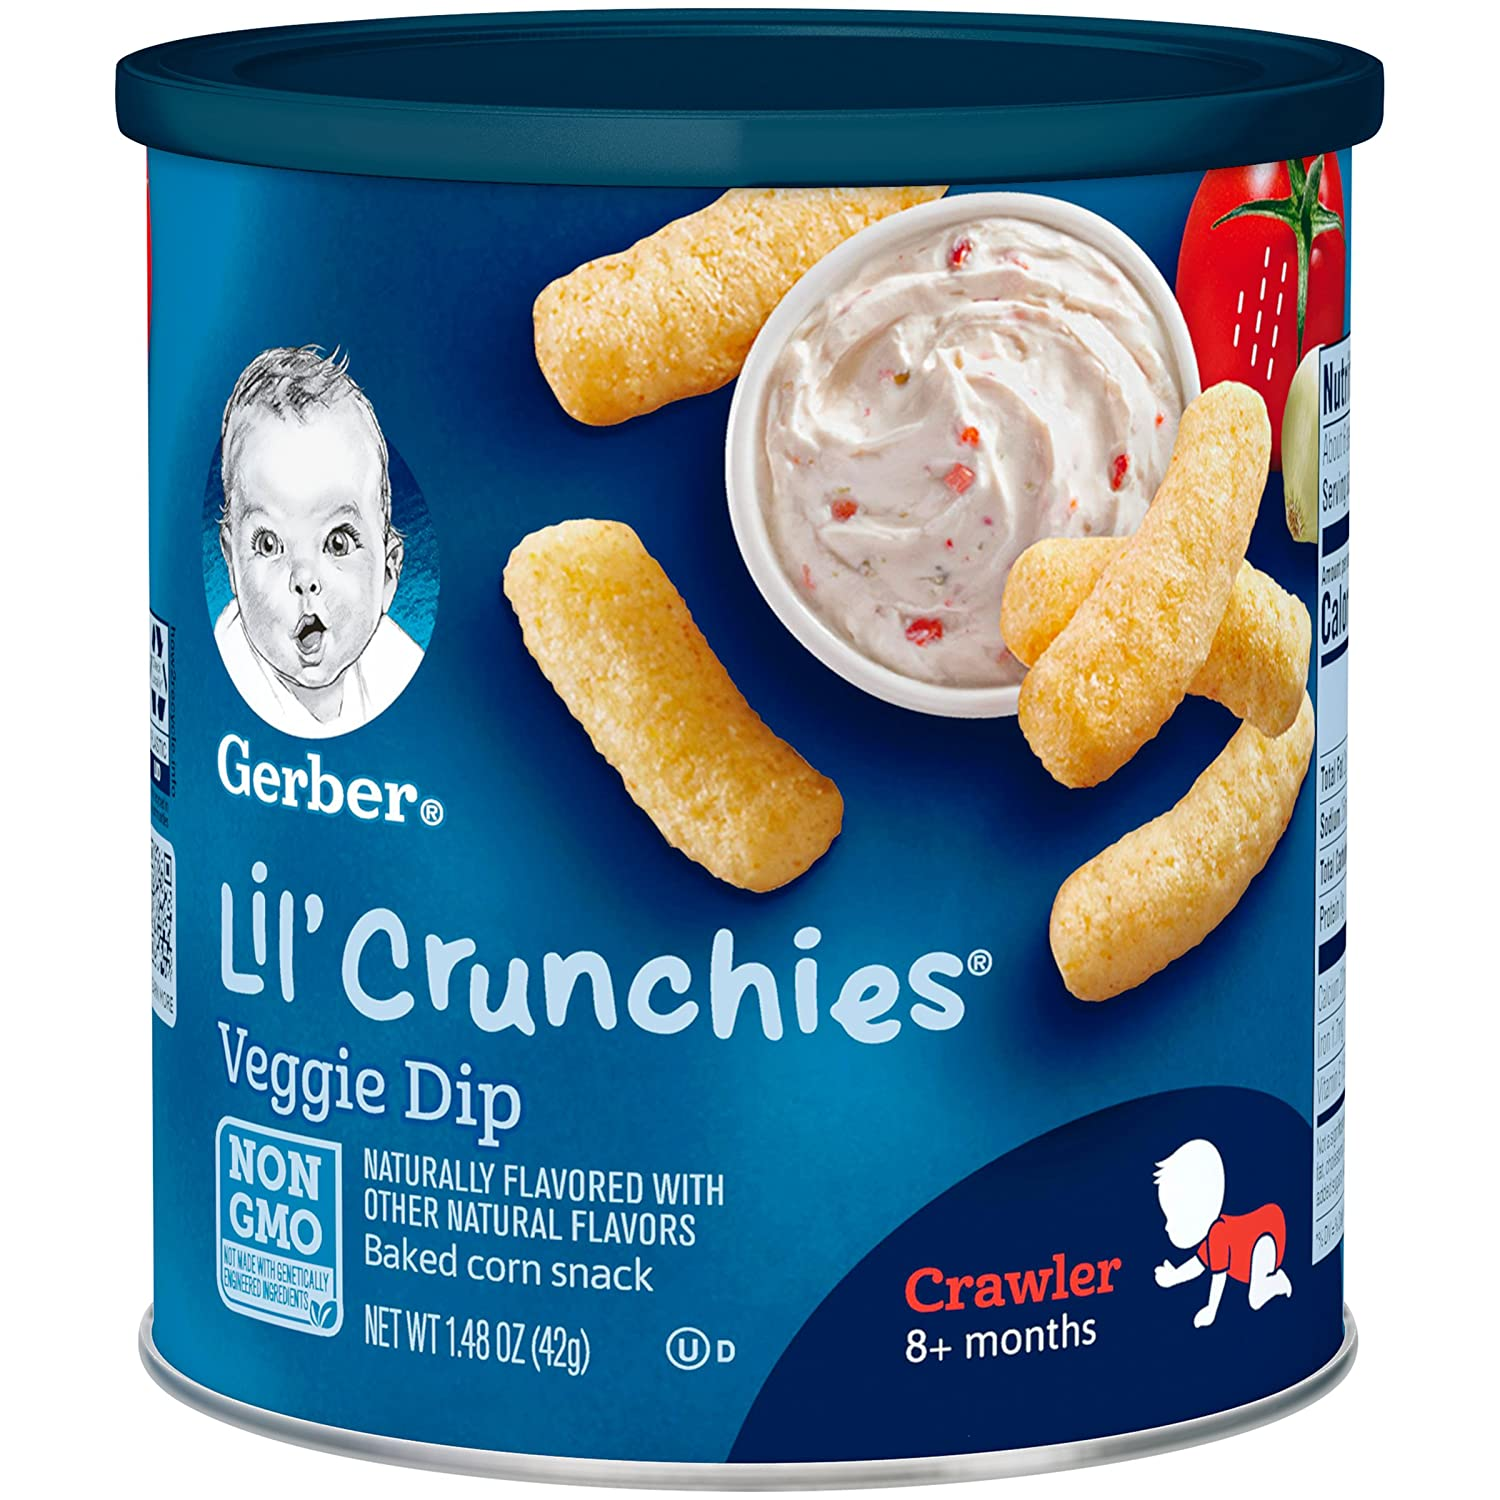 Gerber Lil Crunchies, Veggie Dip, 1.48 Ounce Canisters (Pack of 6)